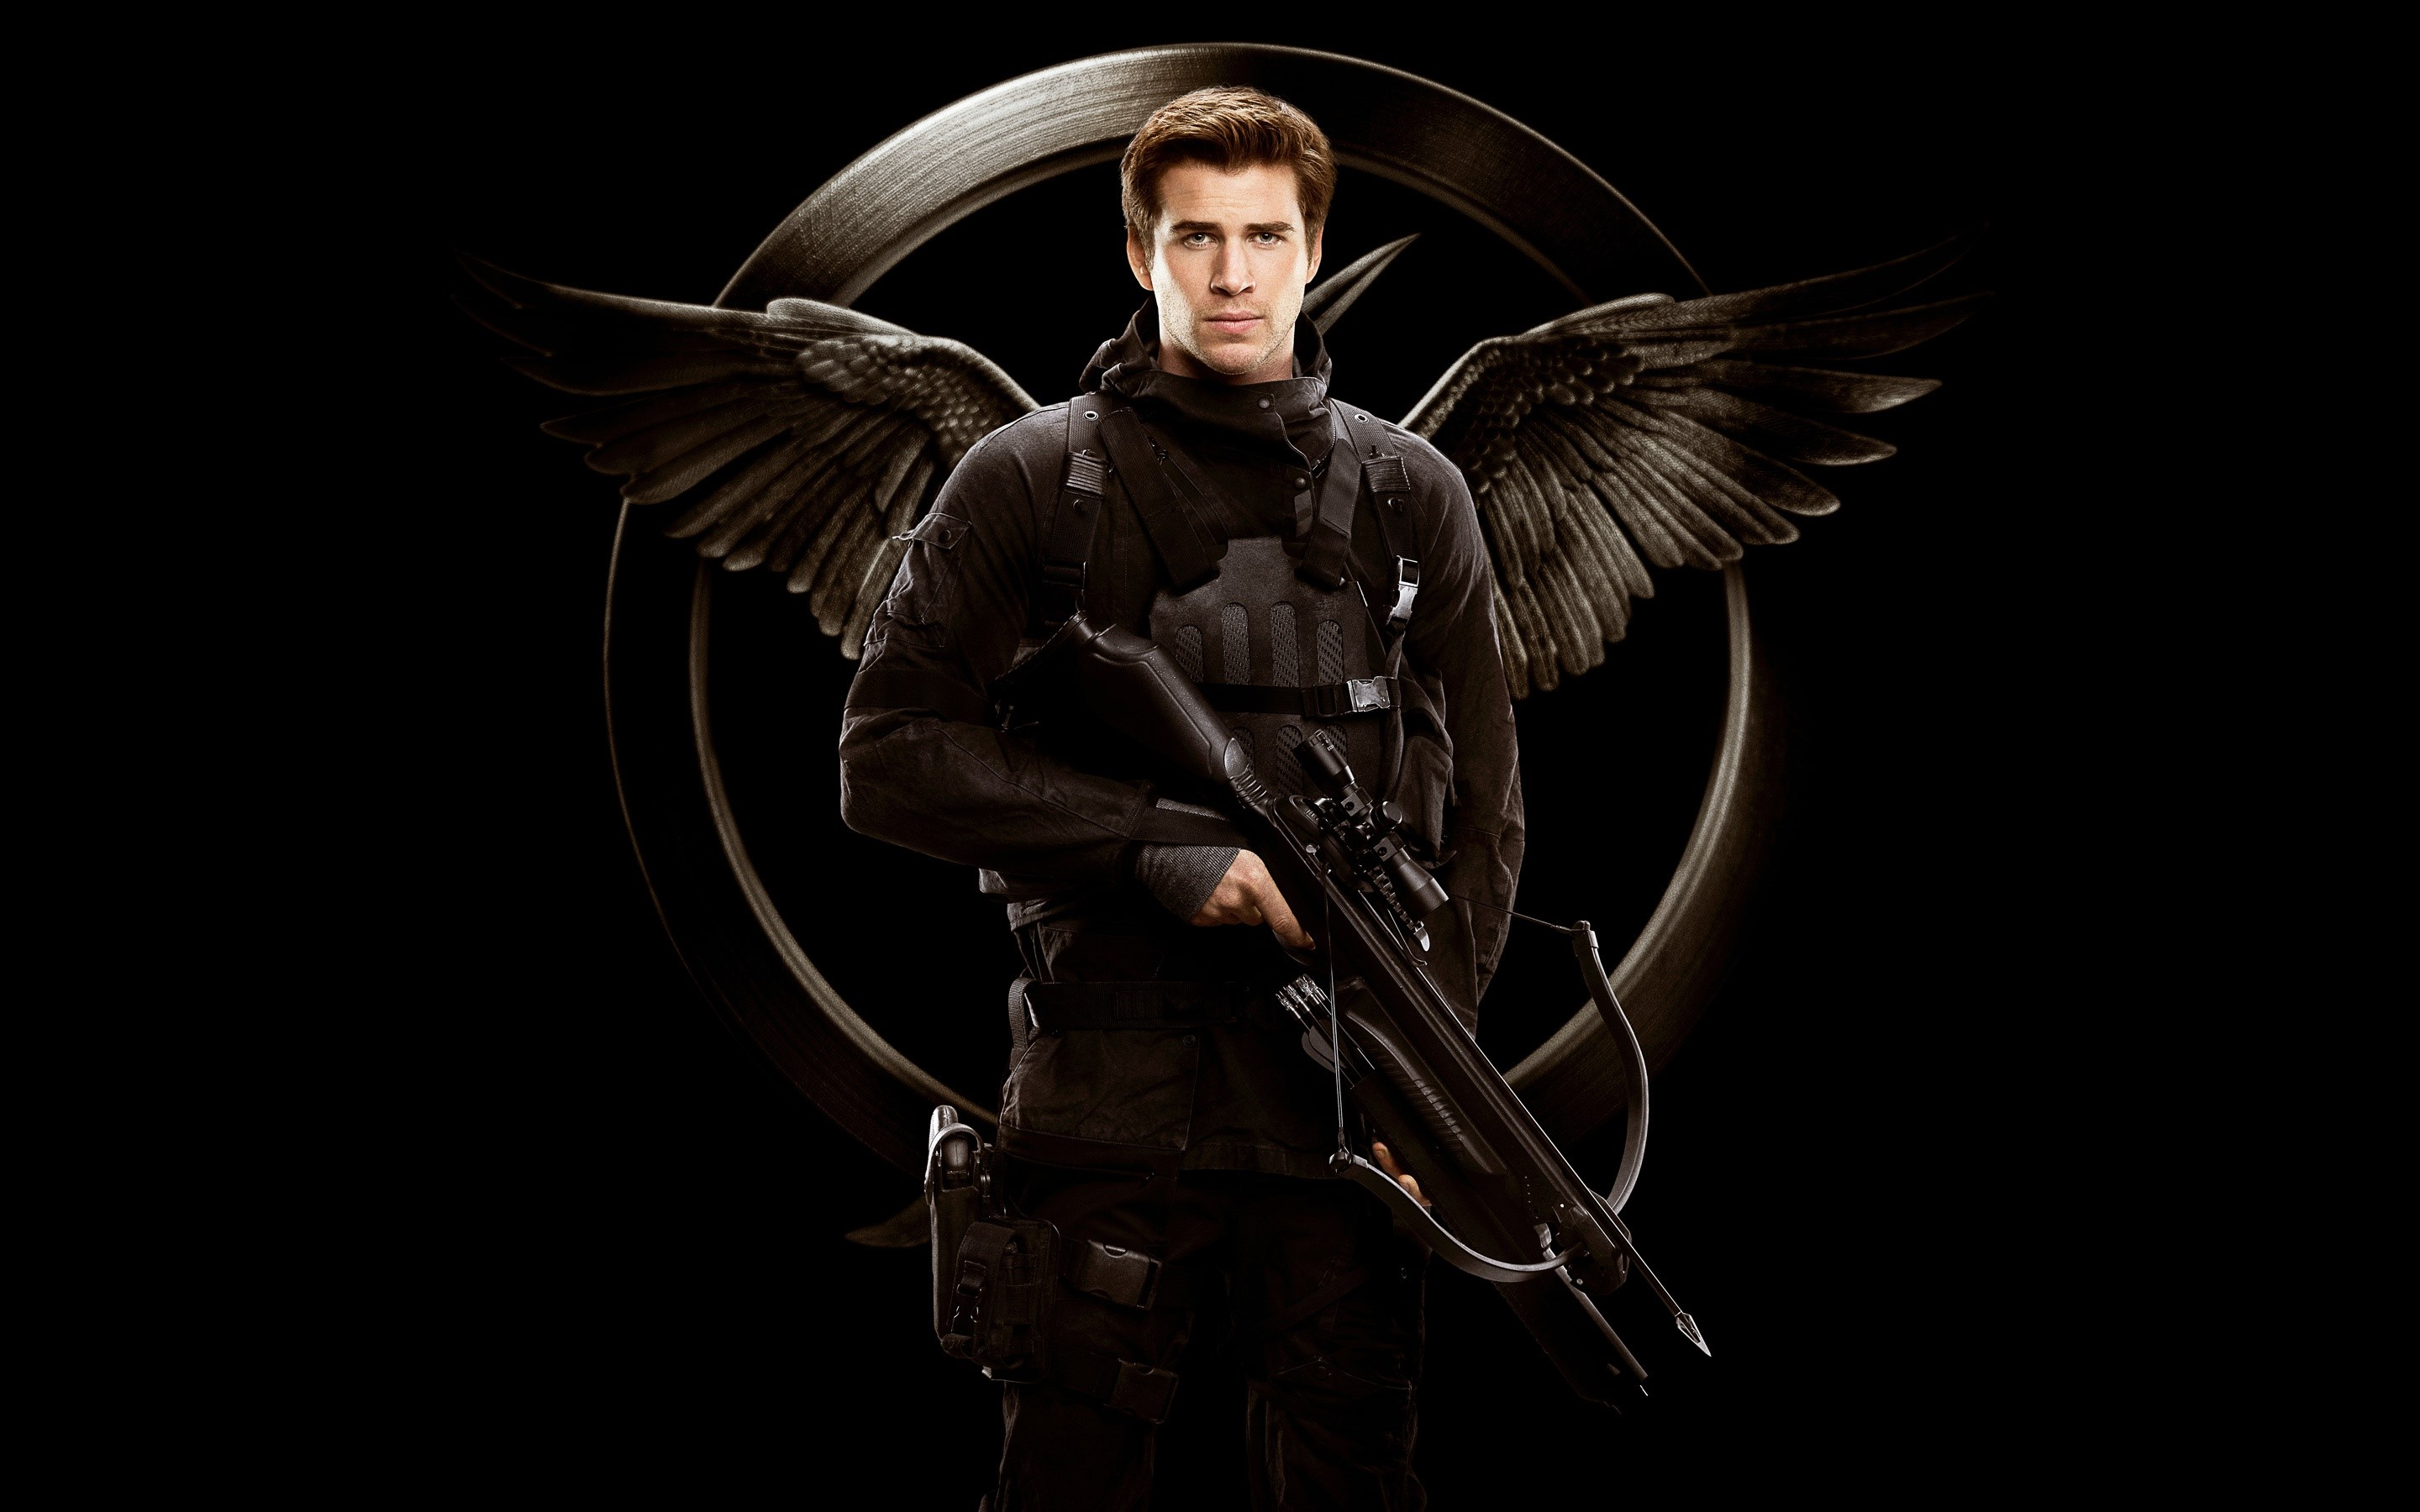 Wallpaper Liam Hemsworth as Gale Hawthorne